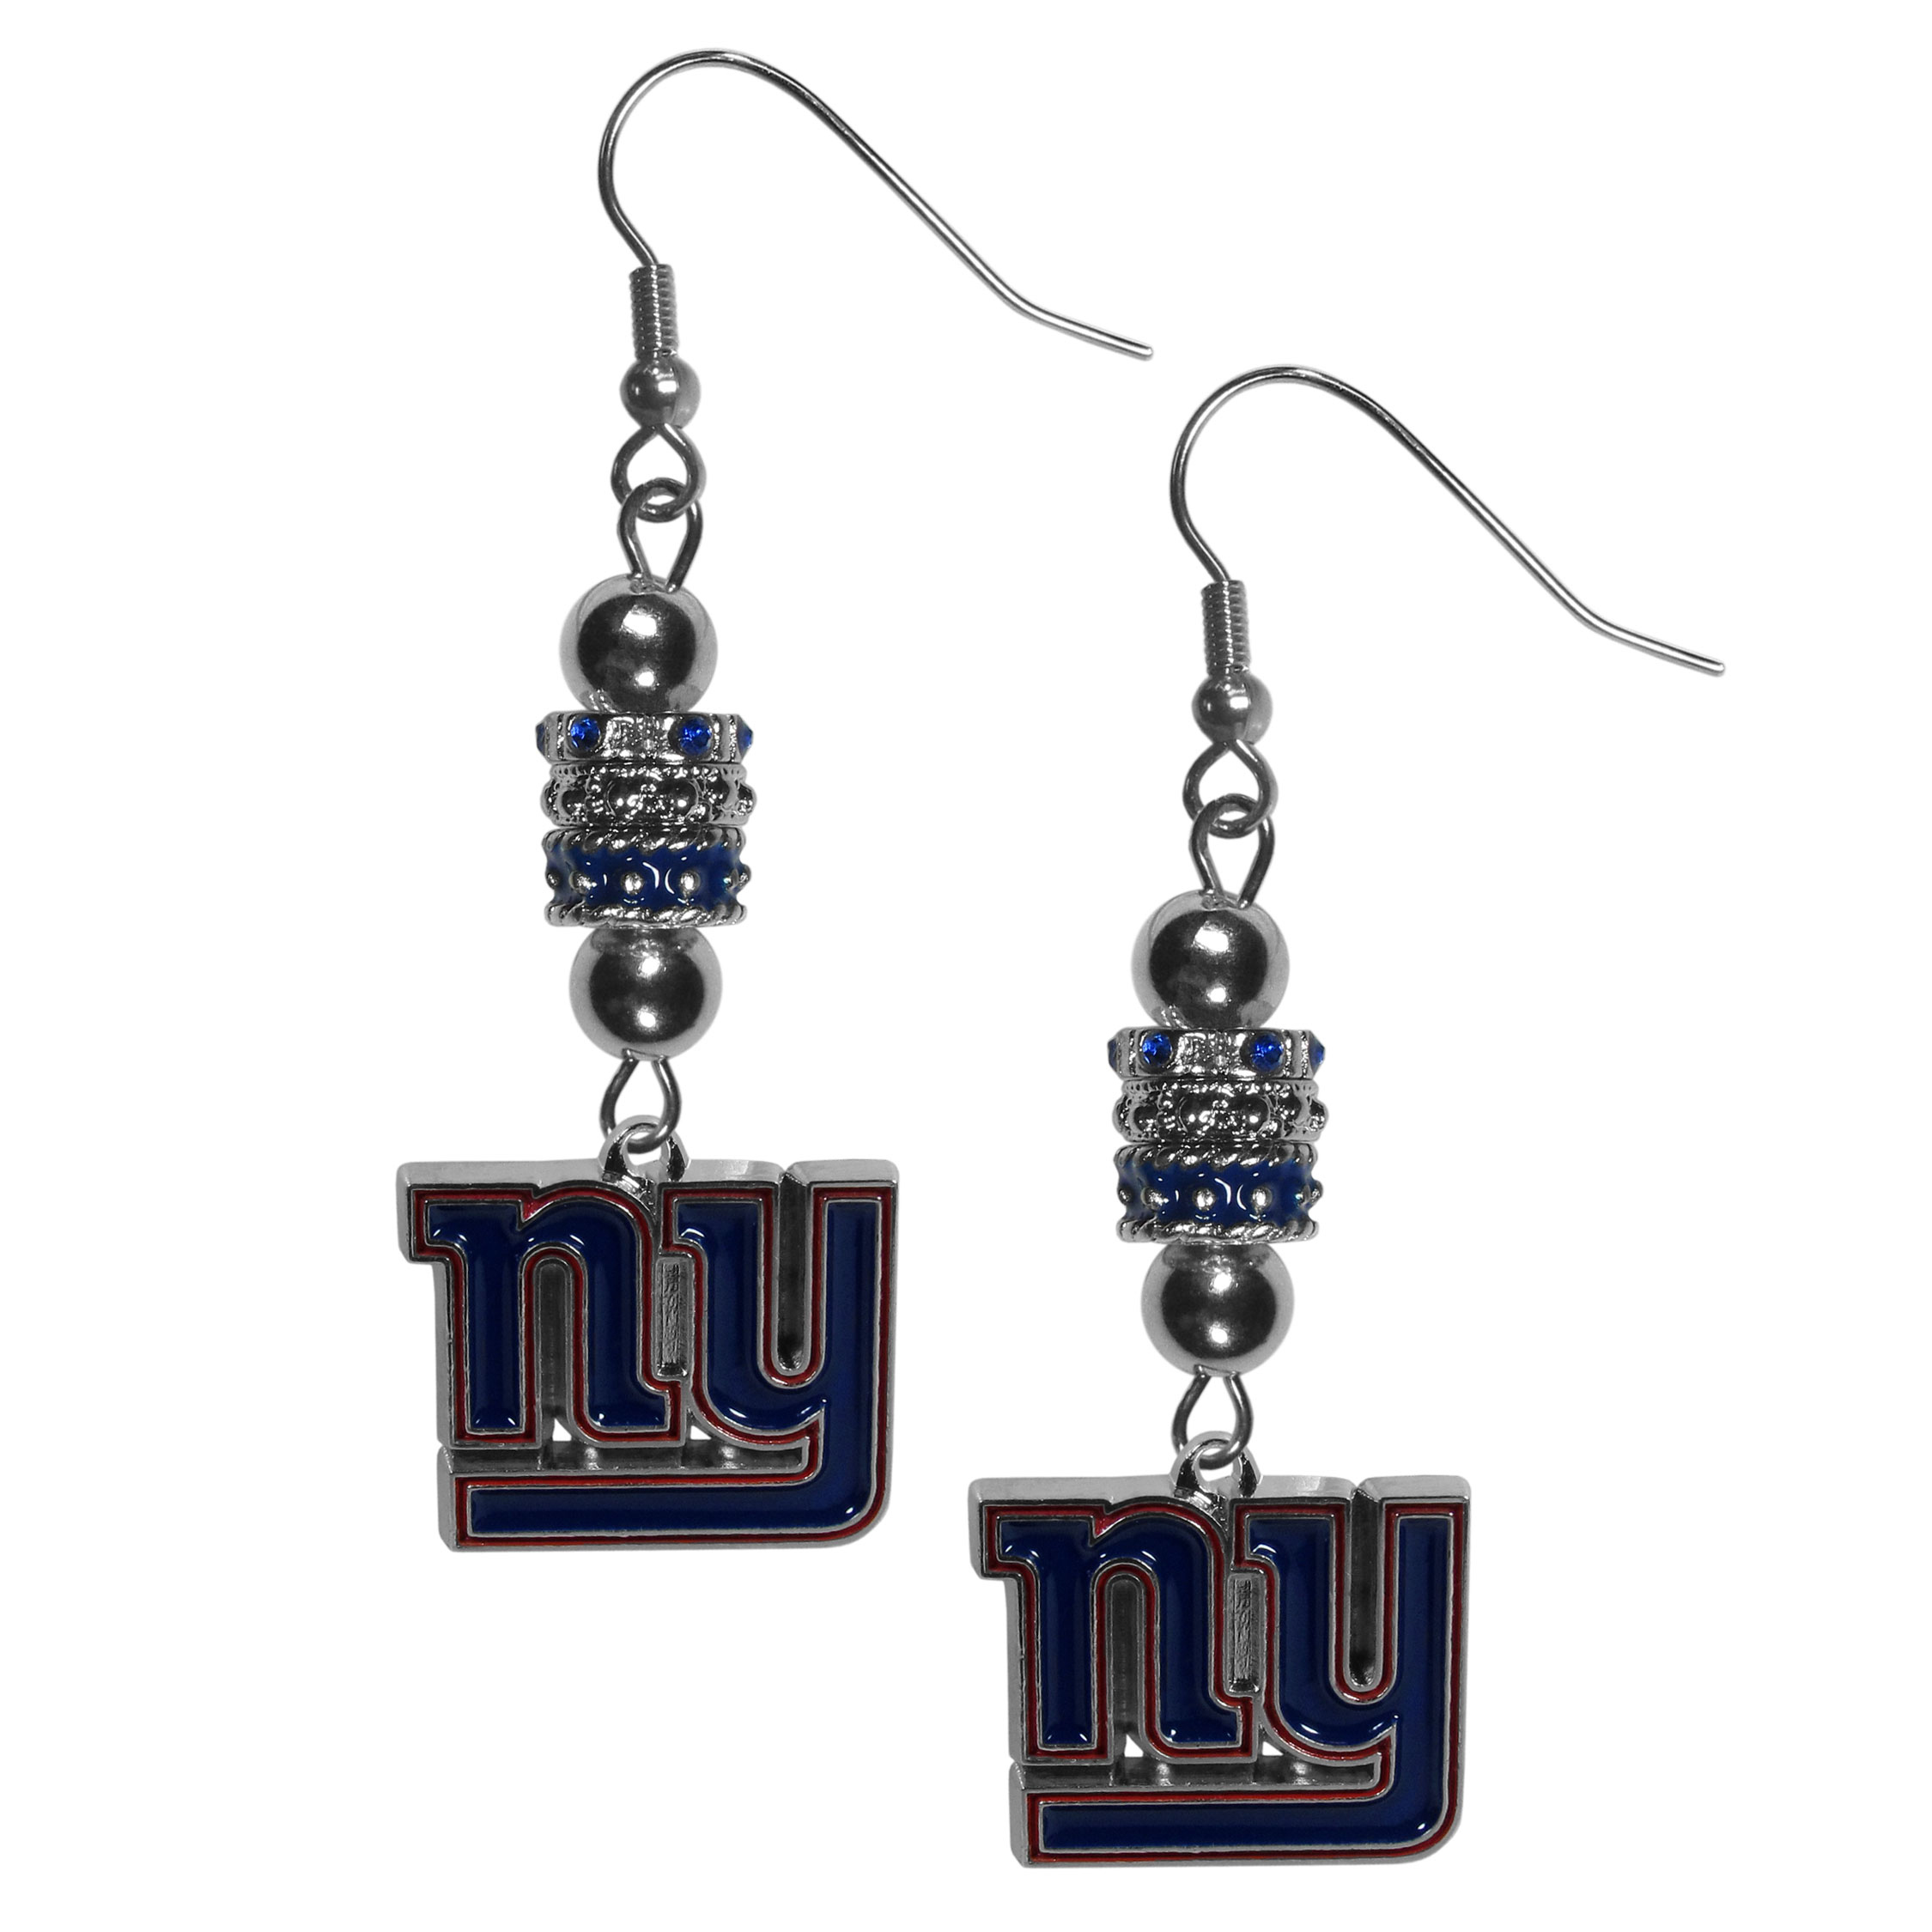 New York Giants Euro Bead Earrings - These beautiful euro style earrings feature 3 euro beads and a detailed New York Giants charm on hypoallergenic fishhook posts.